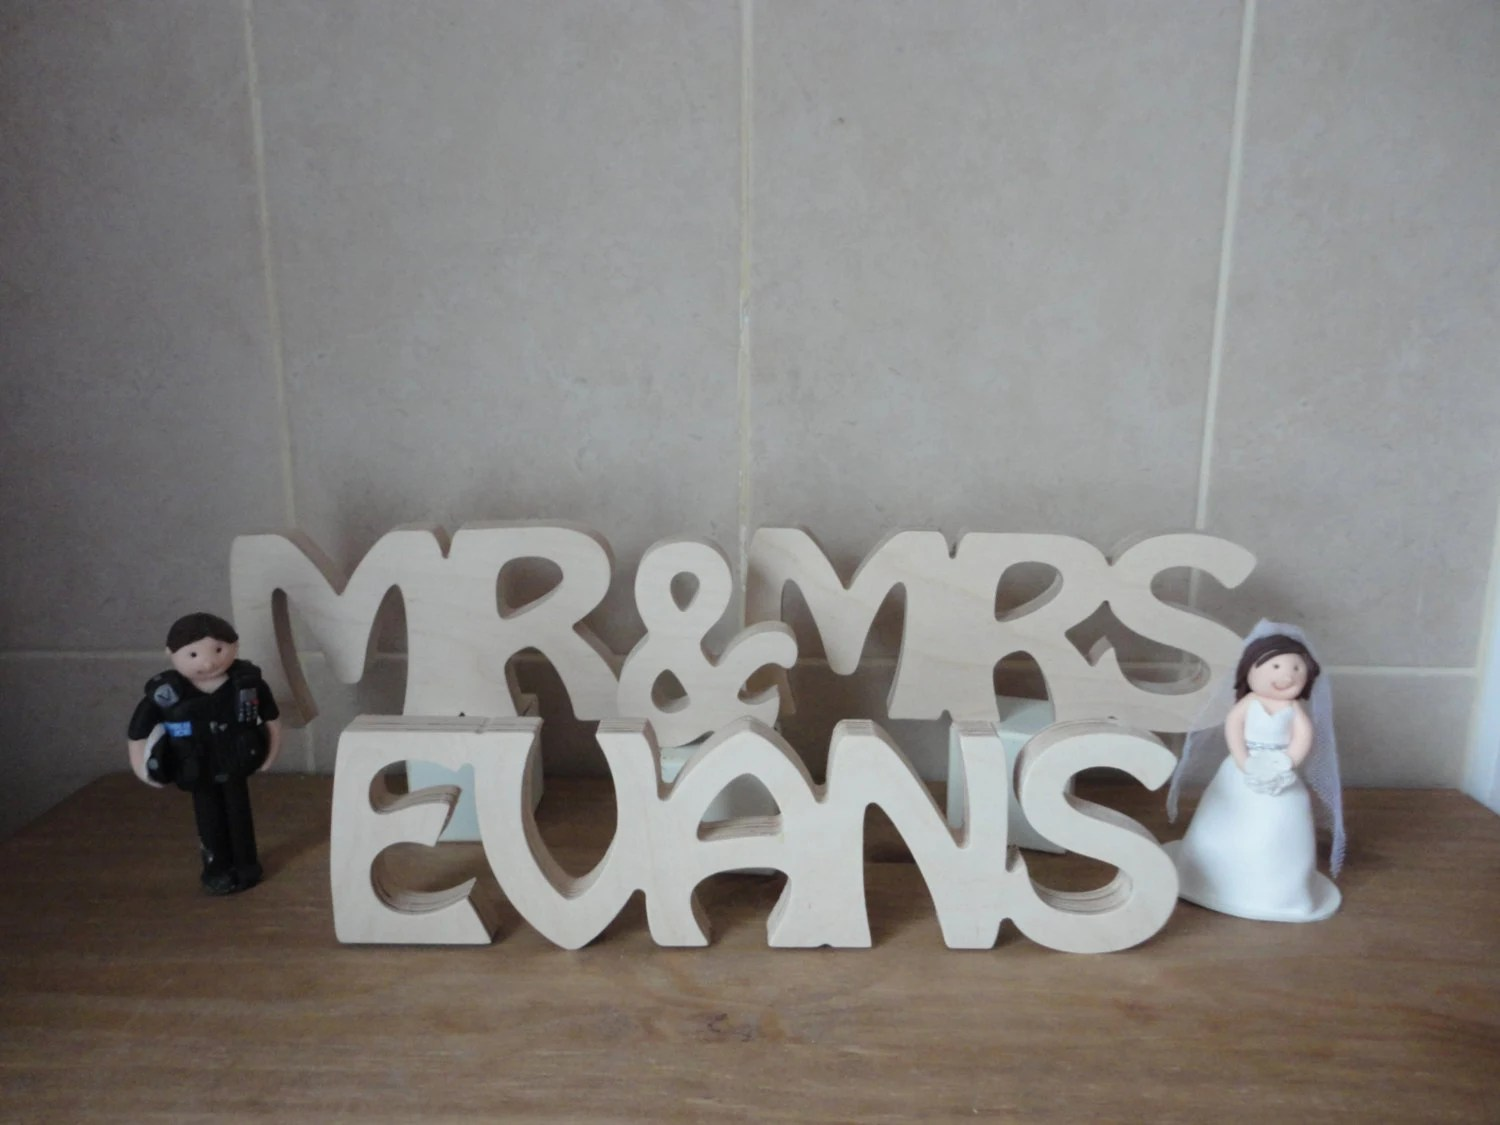 Mr And Mrs Signtop Table Decoration Wedding Gift/present Mdf